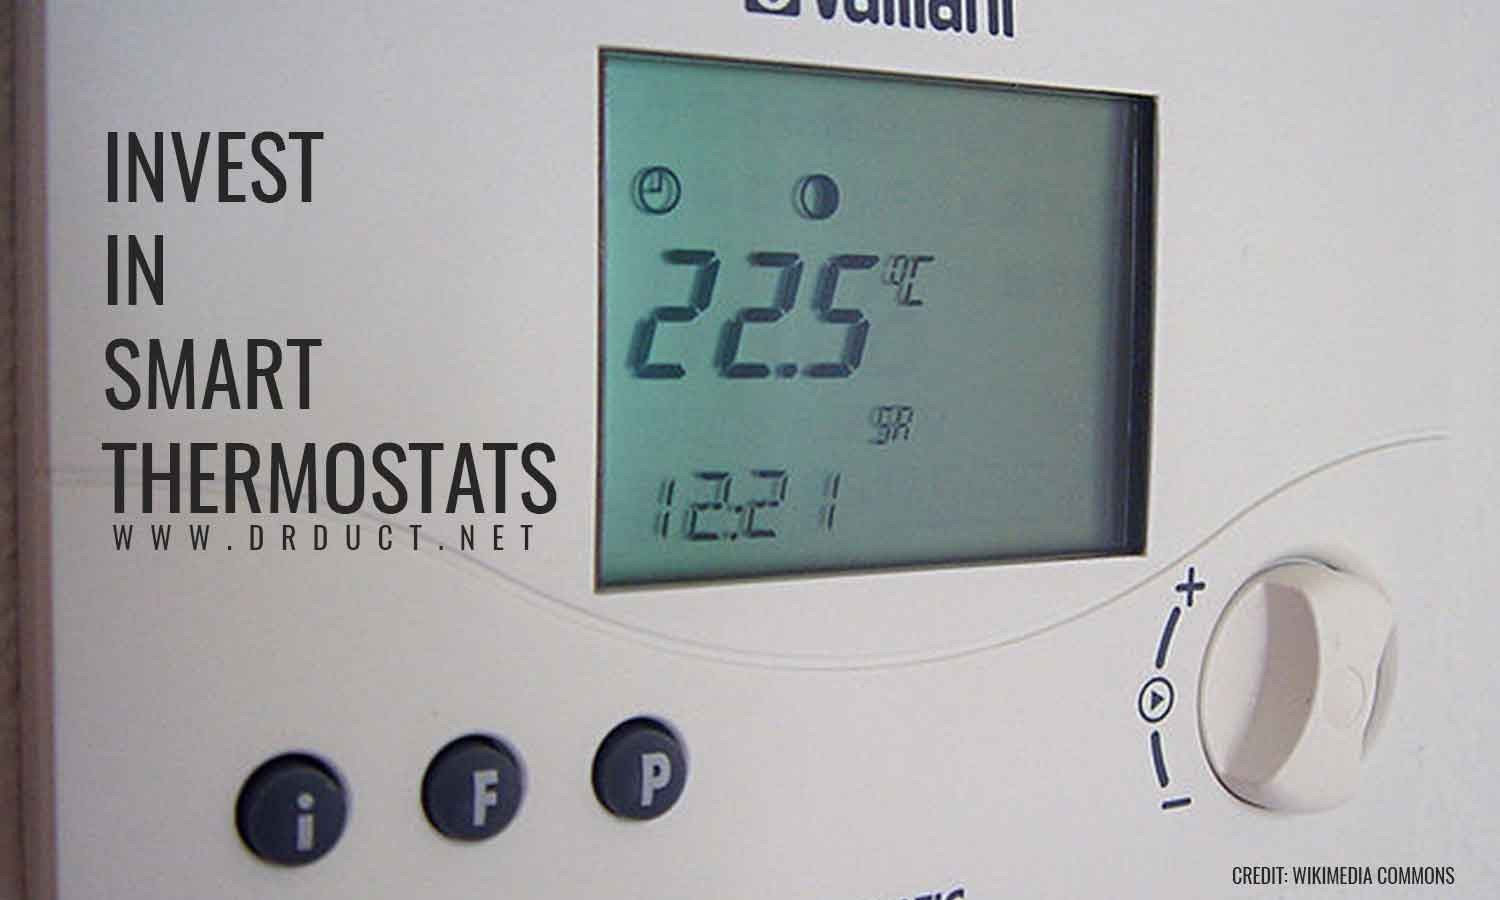 INVEST IN THERMOSTATS